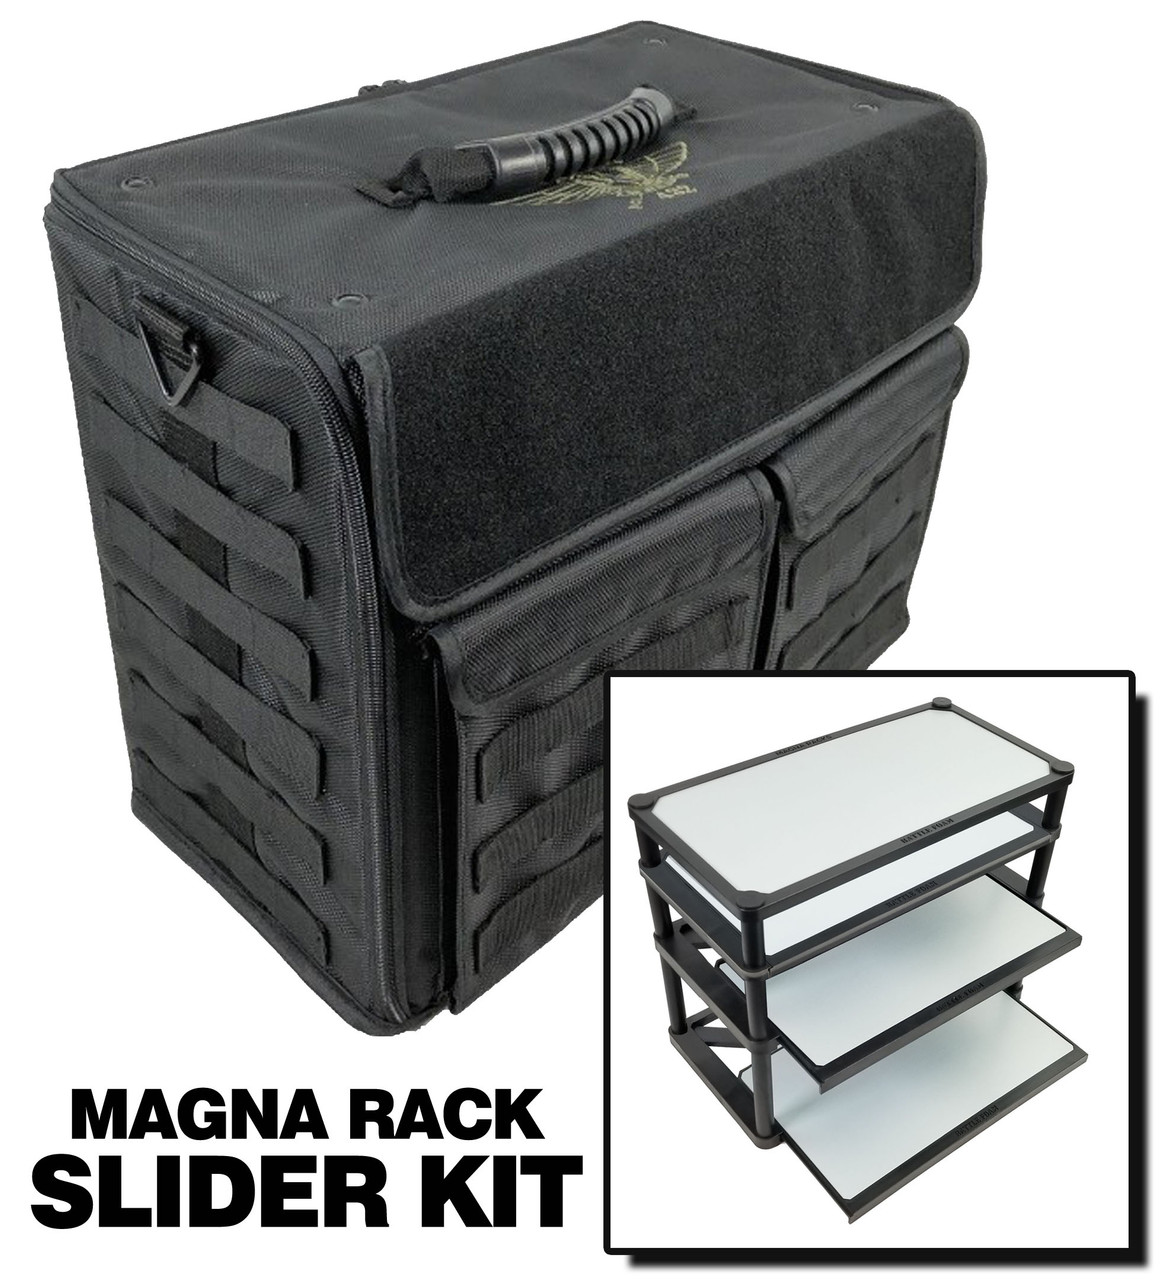 432 P A C K 432 Molle Horizontal With Magna Rack Slider Load Out Black Battle Foam For magna rack assembly instructions, please click here. 432 p a c k 432 molle horizontal with magna rack slider load out black